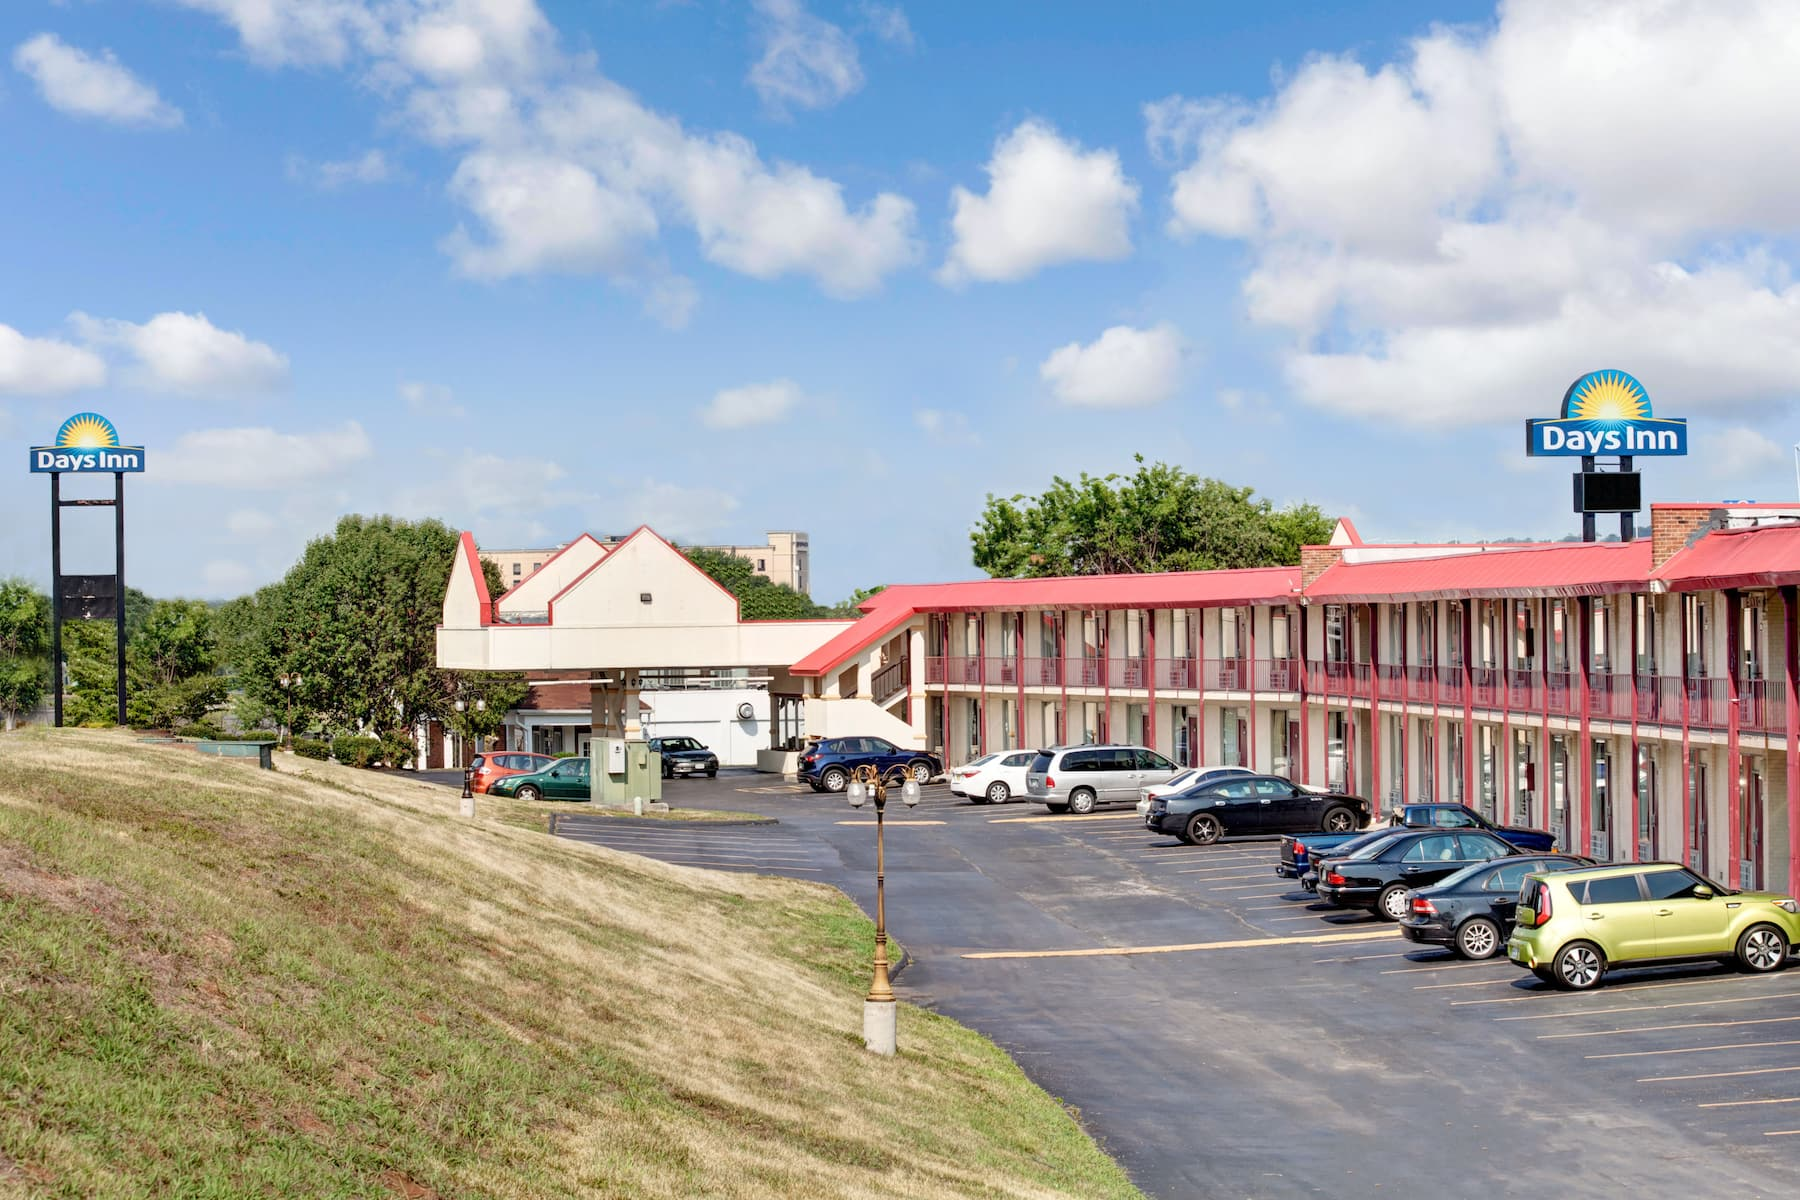 Days Inn By Wyndham Knoxville West Knoxville Tn Hotels